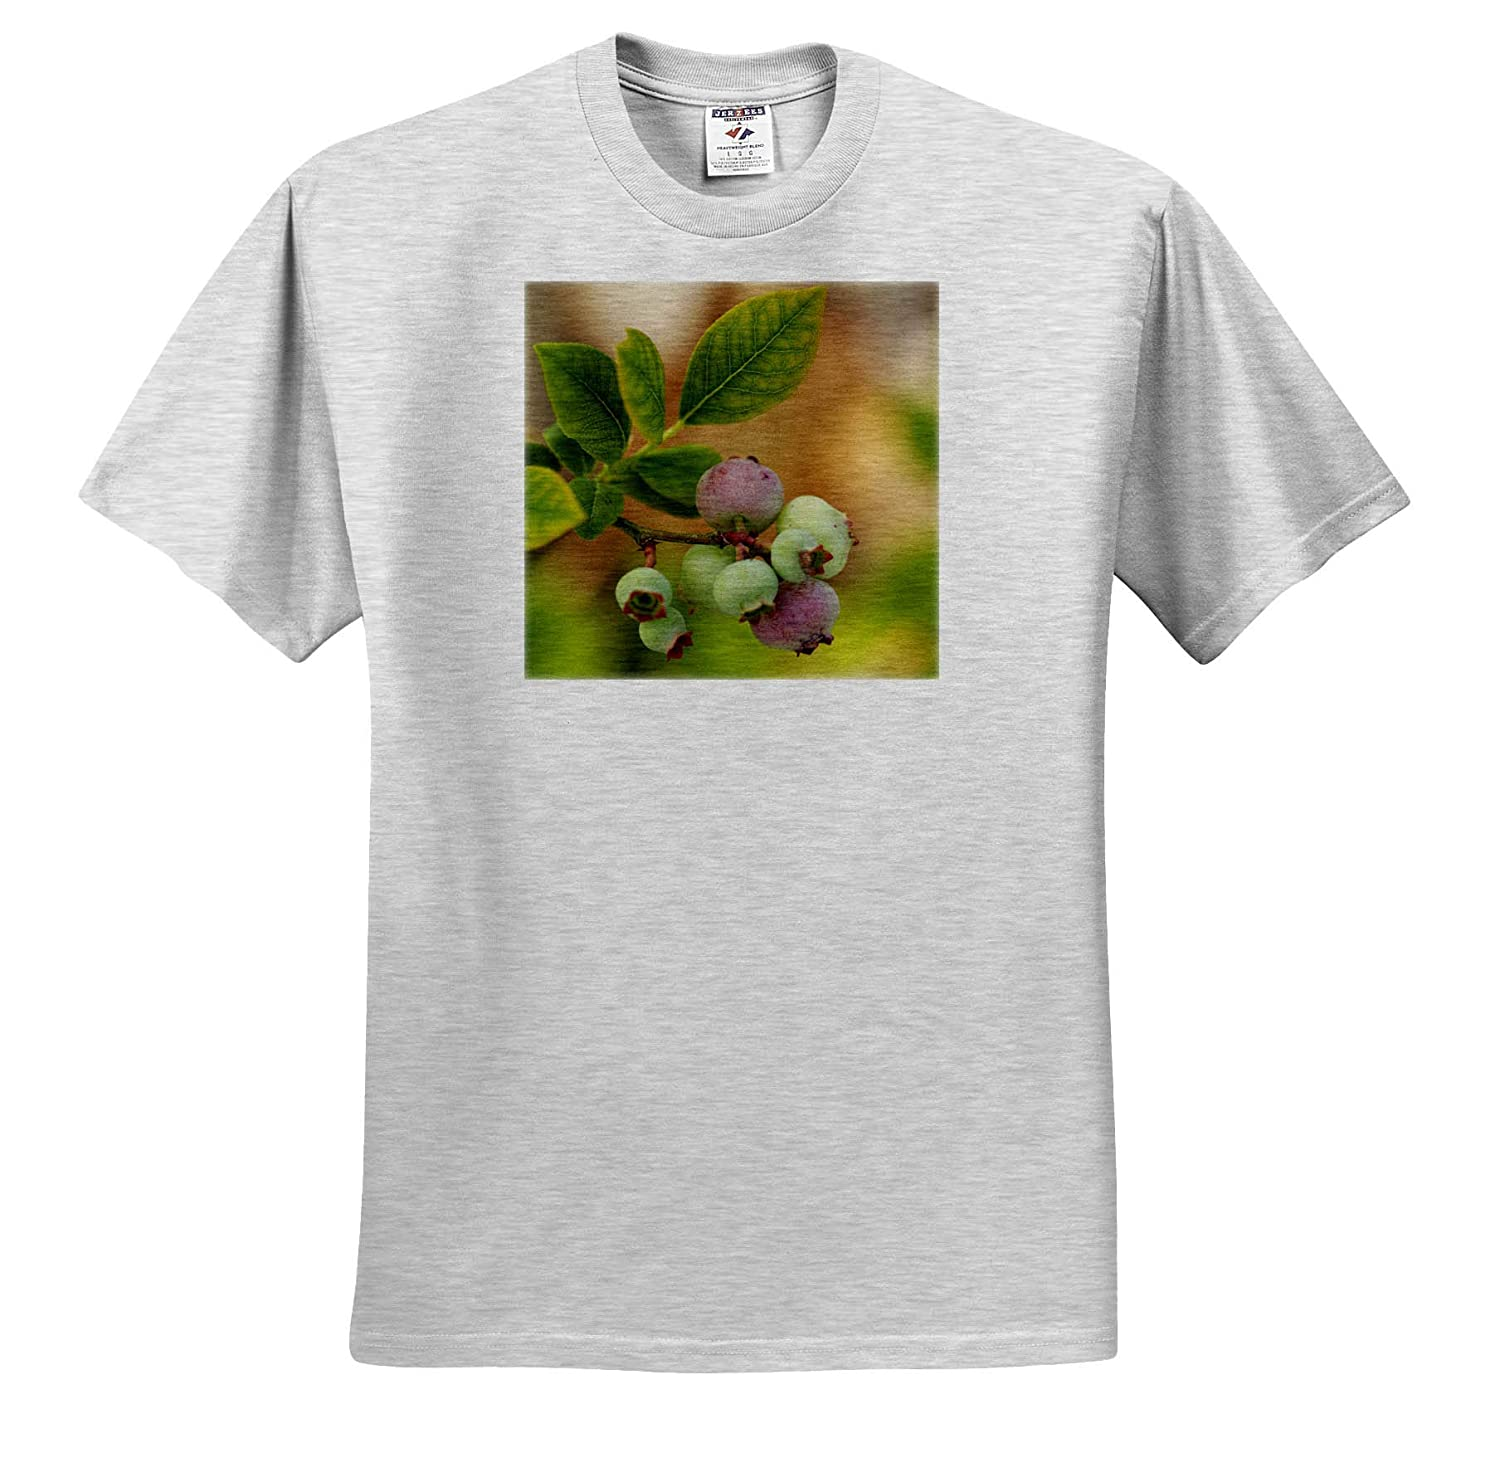 Plants - Adult T-Shirt XL 3dRose Stamp City Macro Photograph of a Cluster of unripened Blueberries ts/_312211